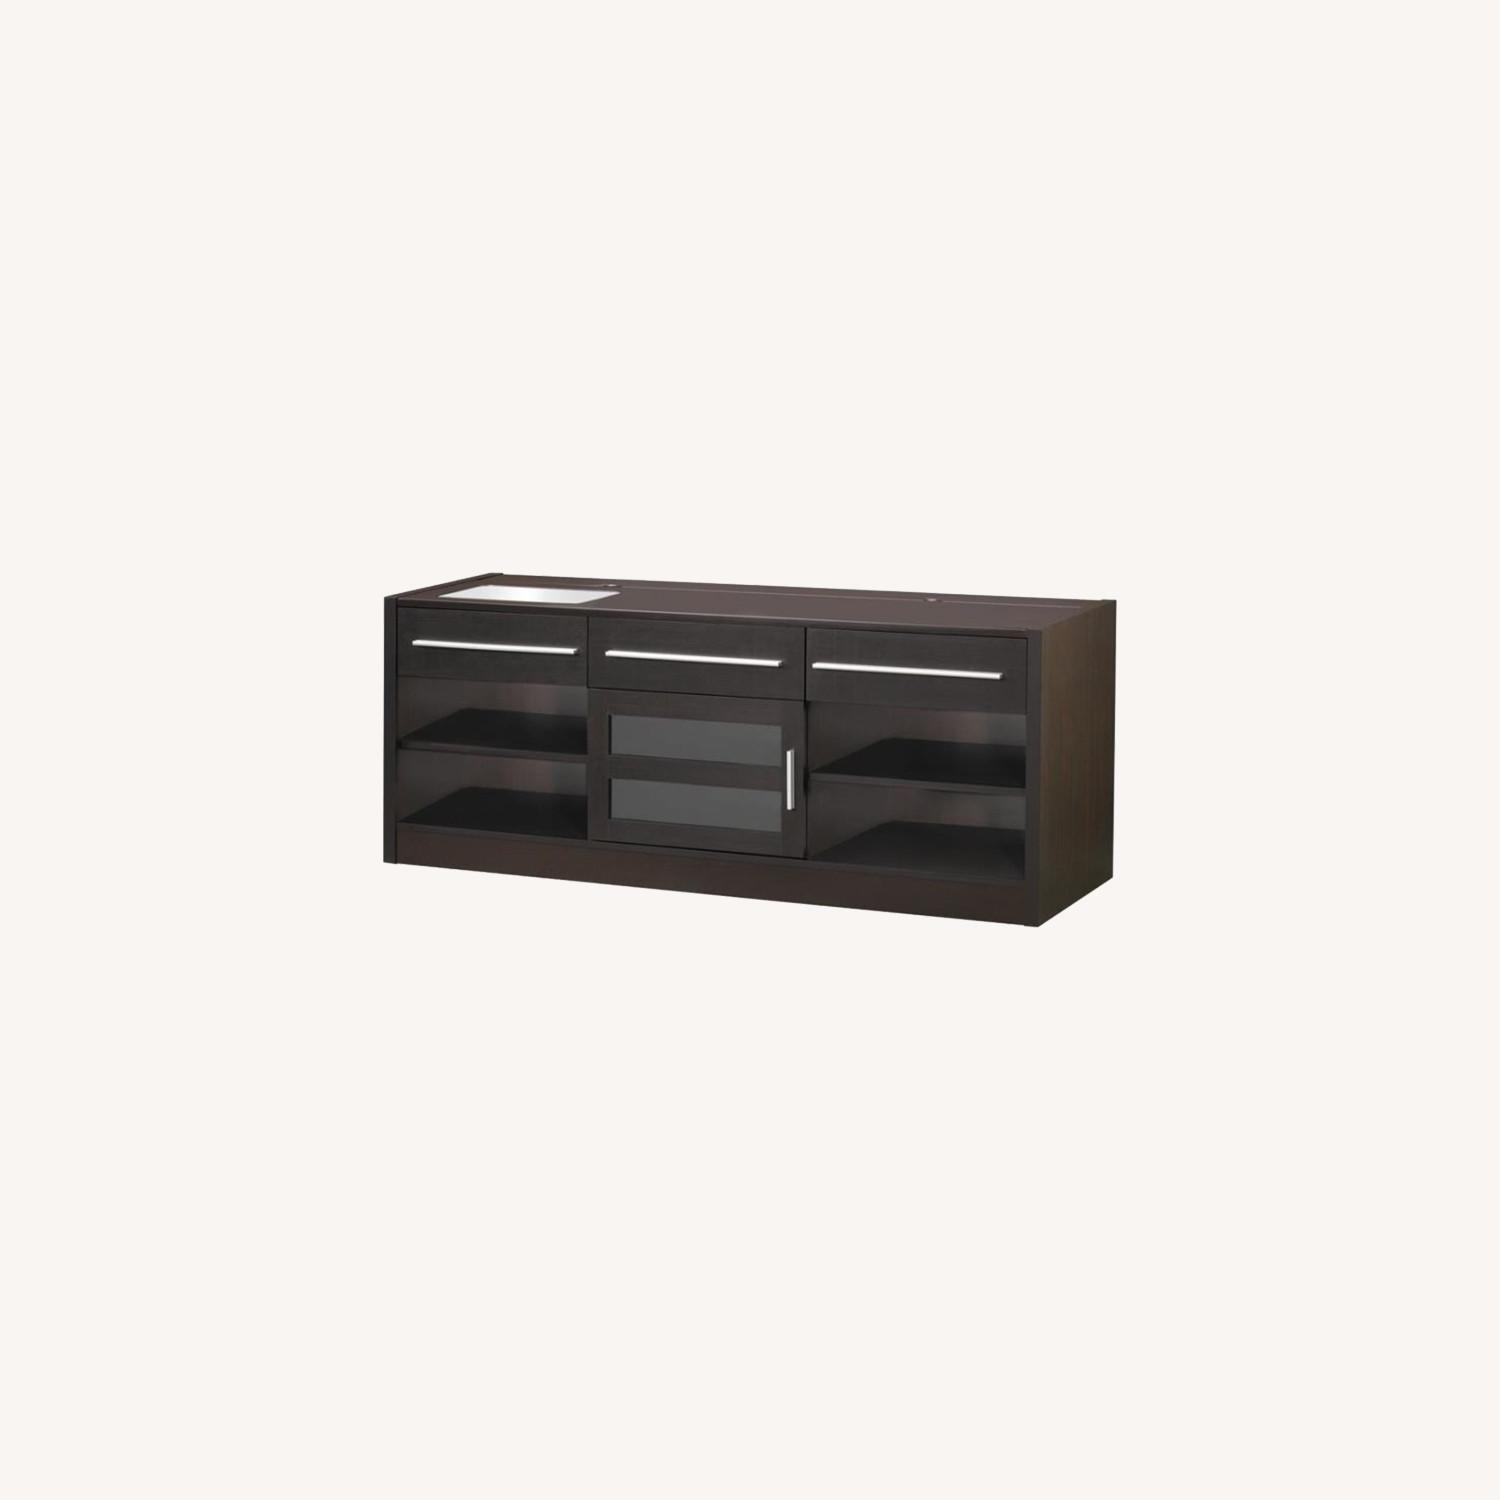 60-Inch Connect-It TV Console In Cappuccino Finish - image-3